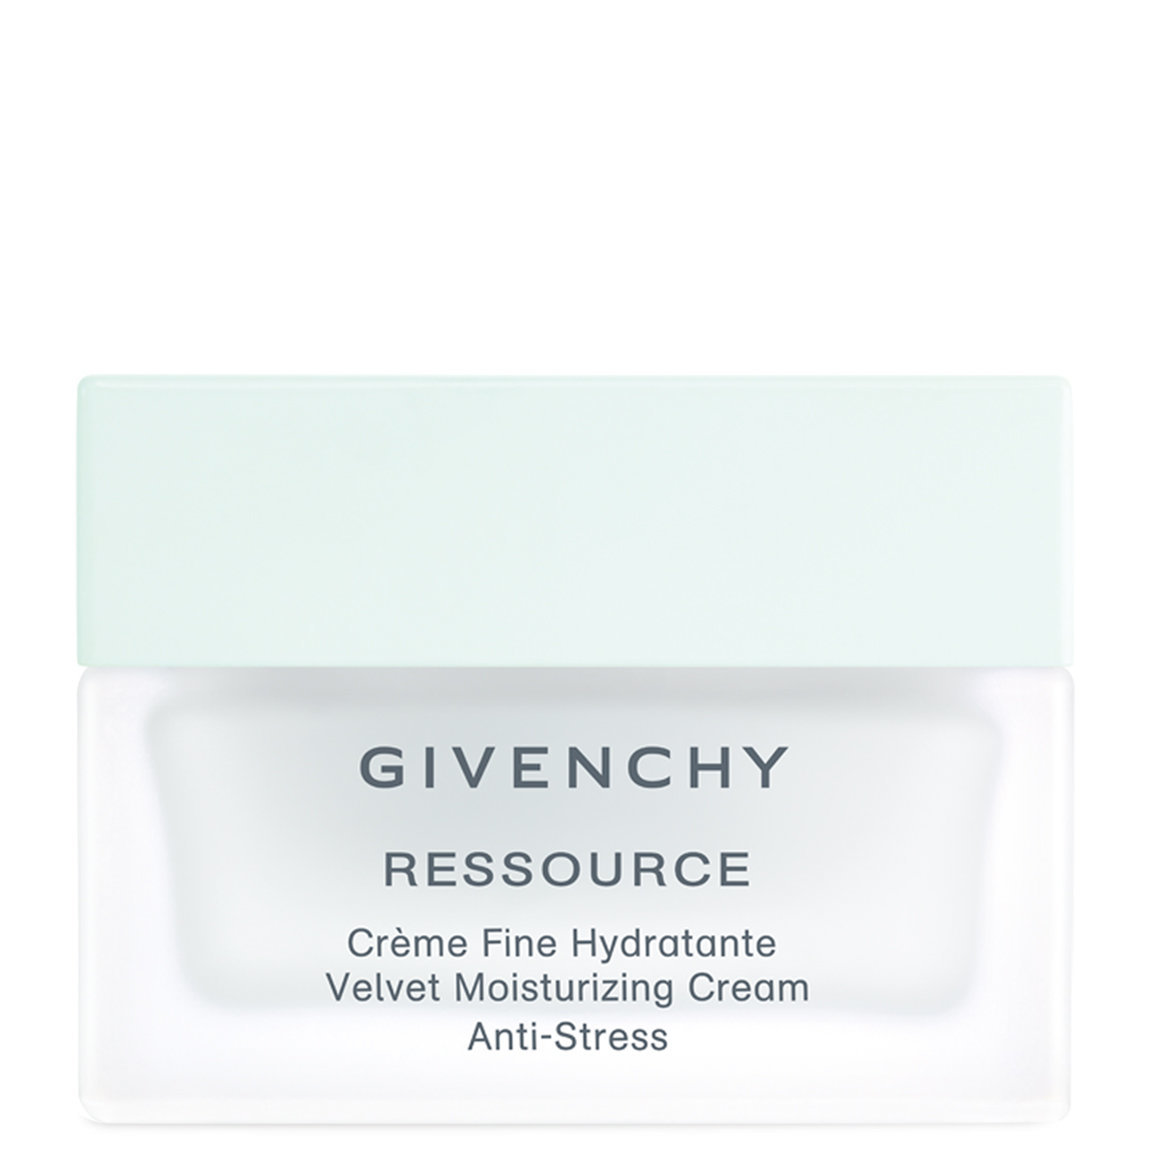 Givenchy Ressource Velvet Moisturizing Cream Anti-Stress alternative view 1 - product swatch.